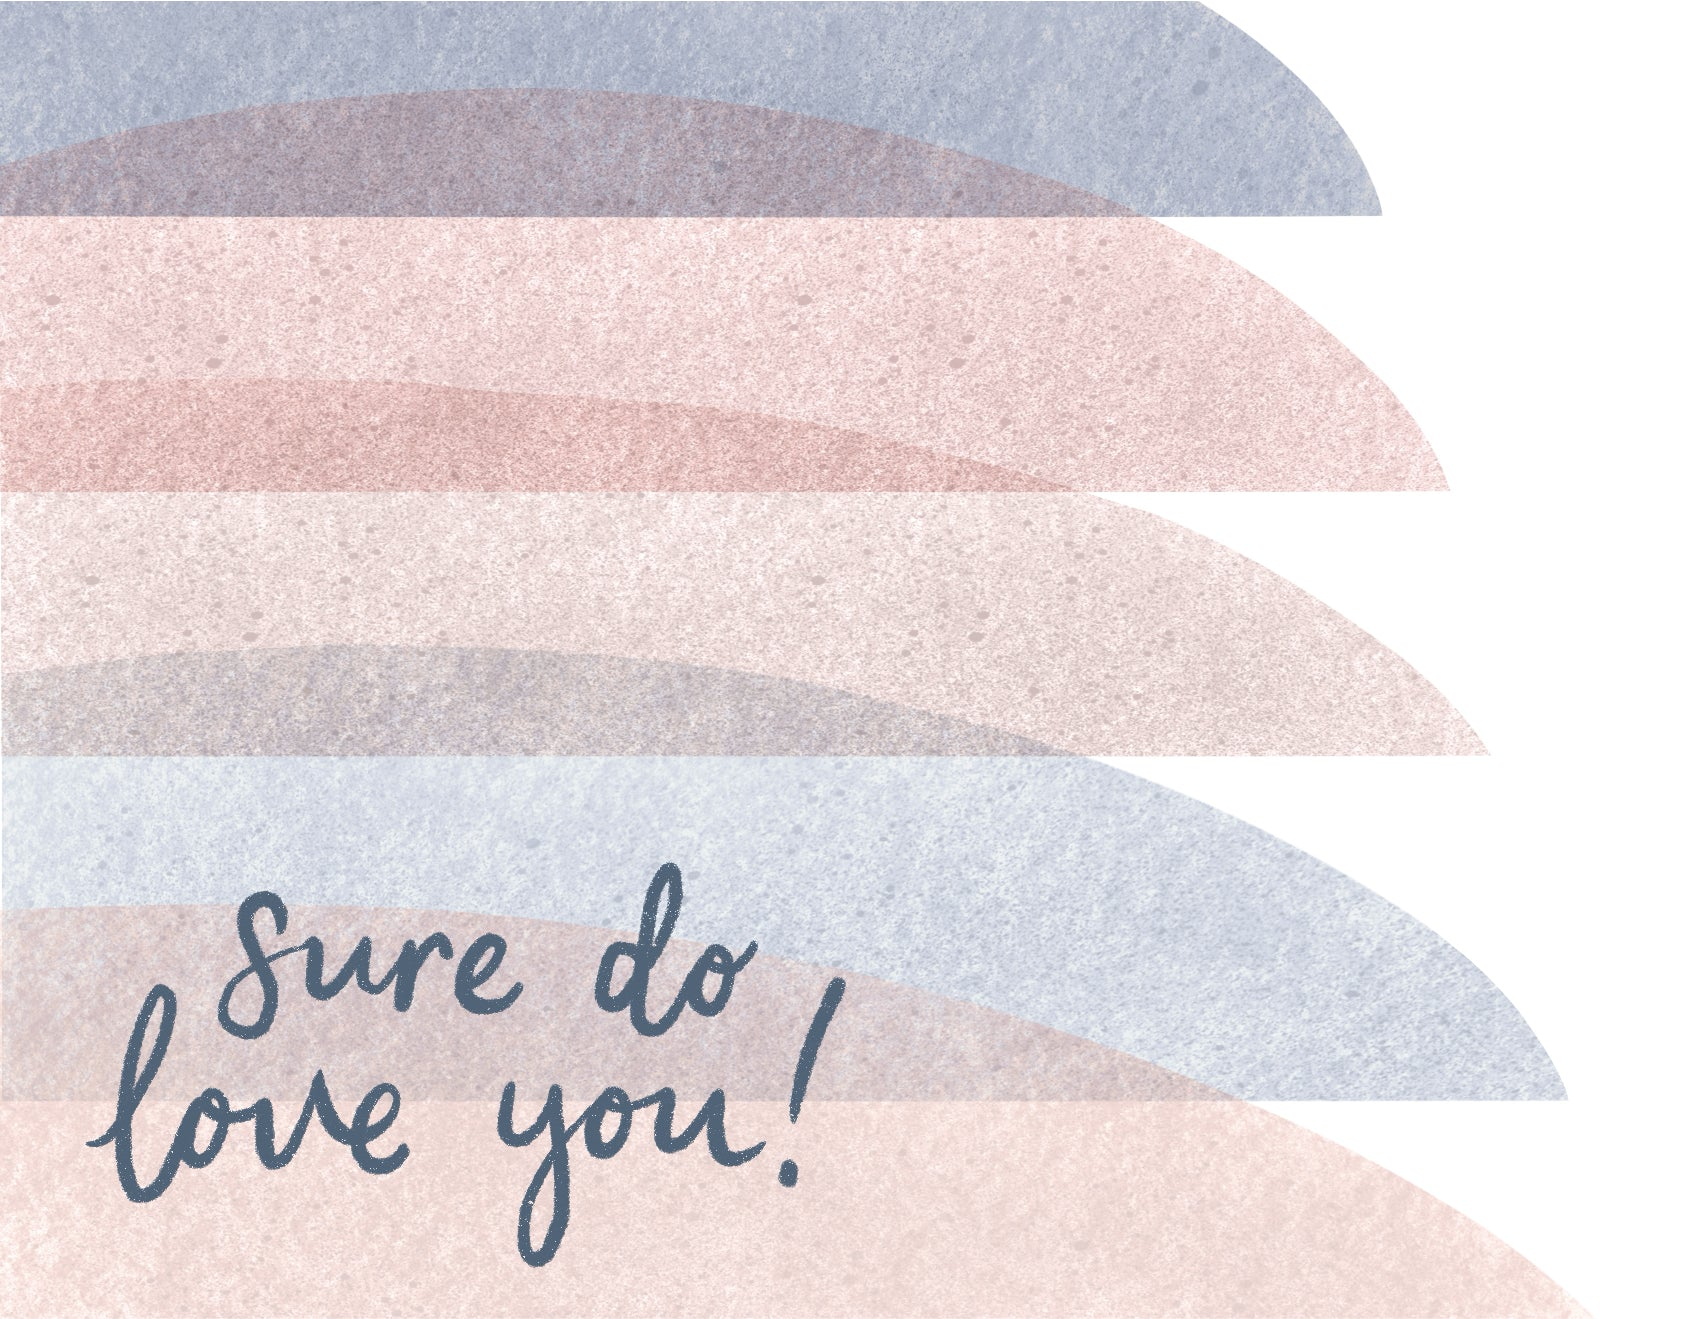 Sure Do Love You Card - Personalized